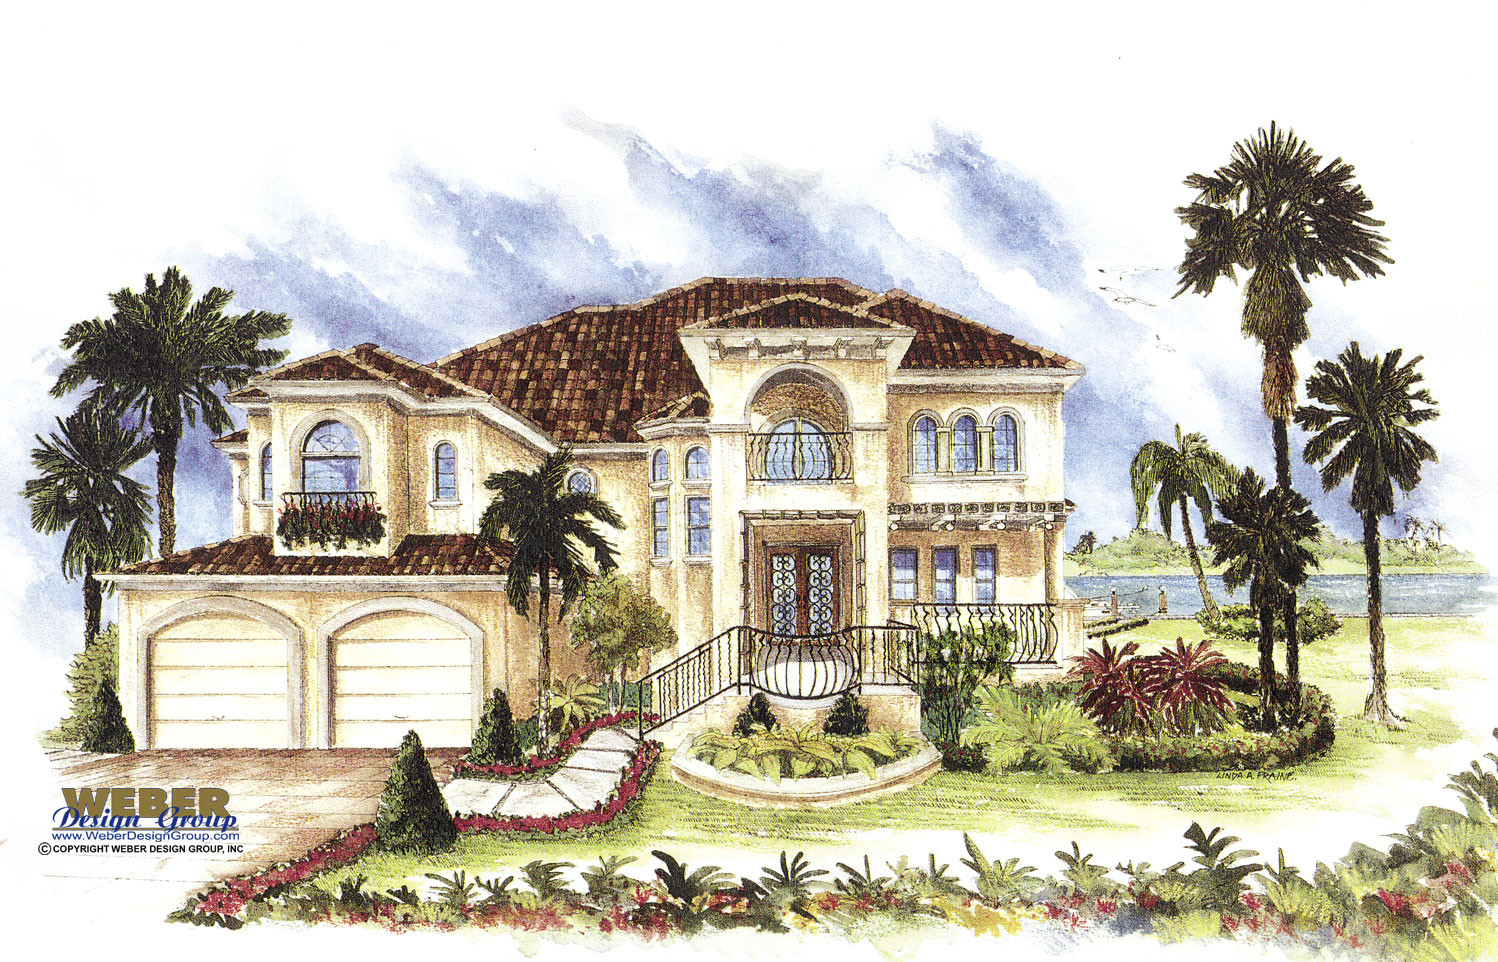 Mediterranean House Plan 2 Story Luxury Home floor Plan with Pool